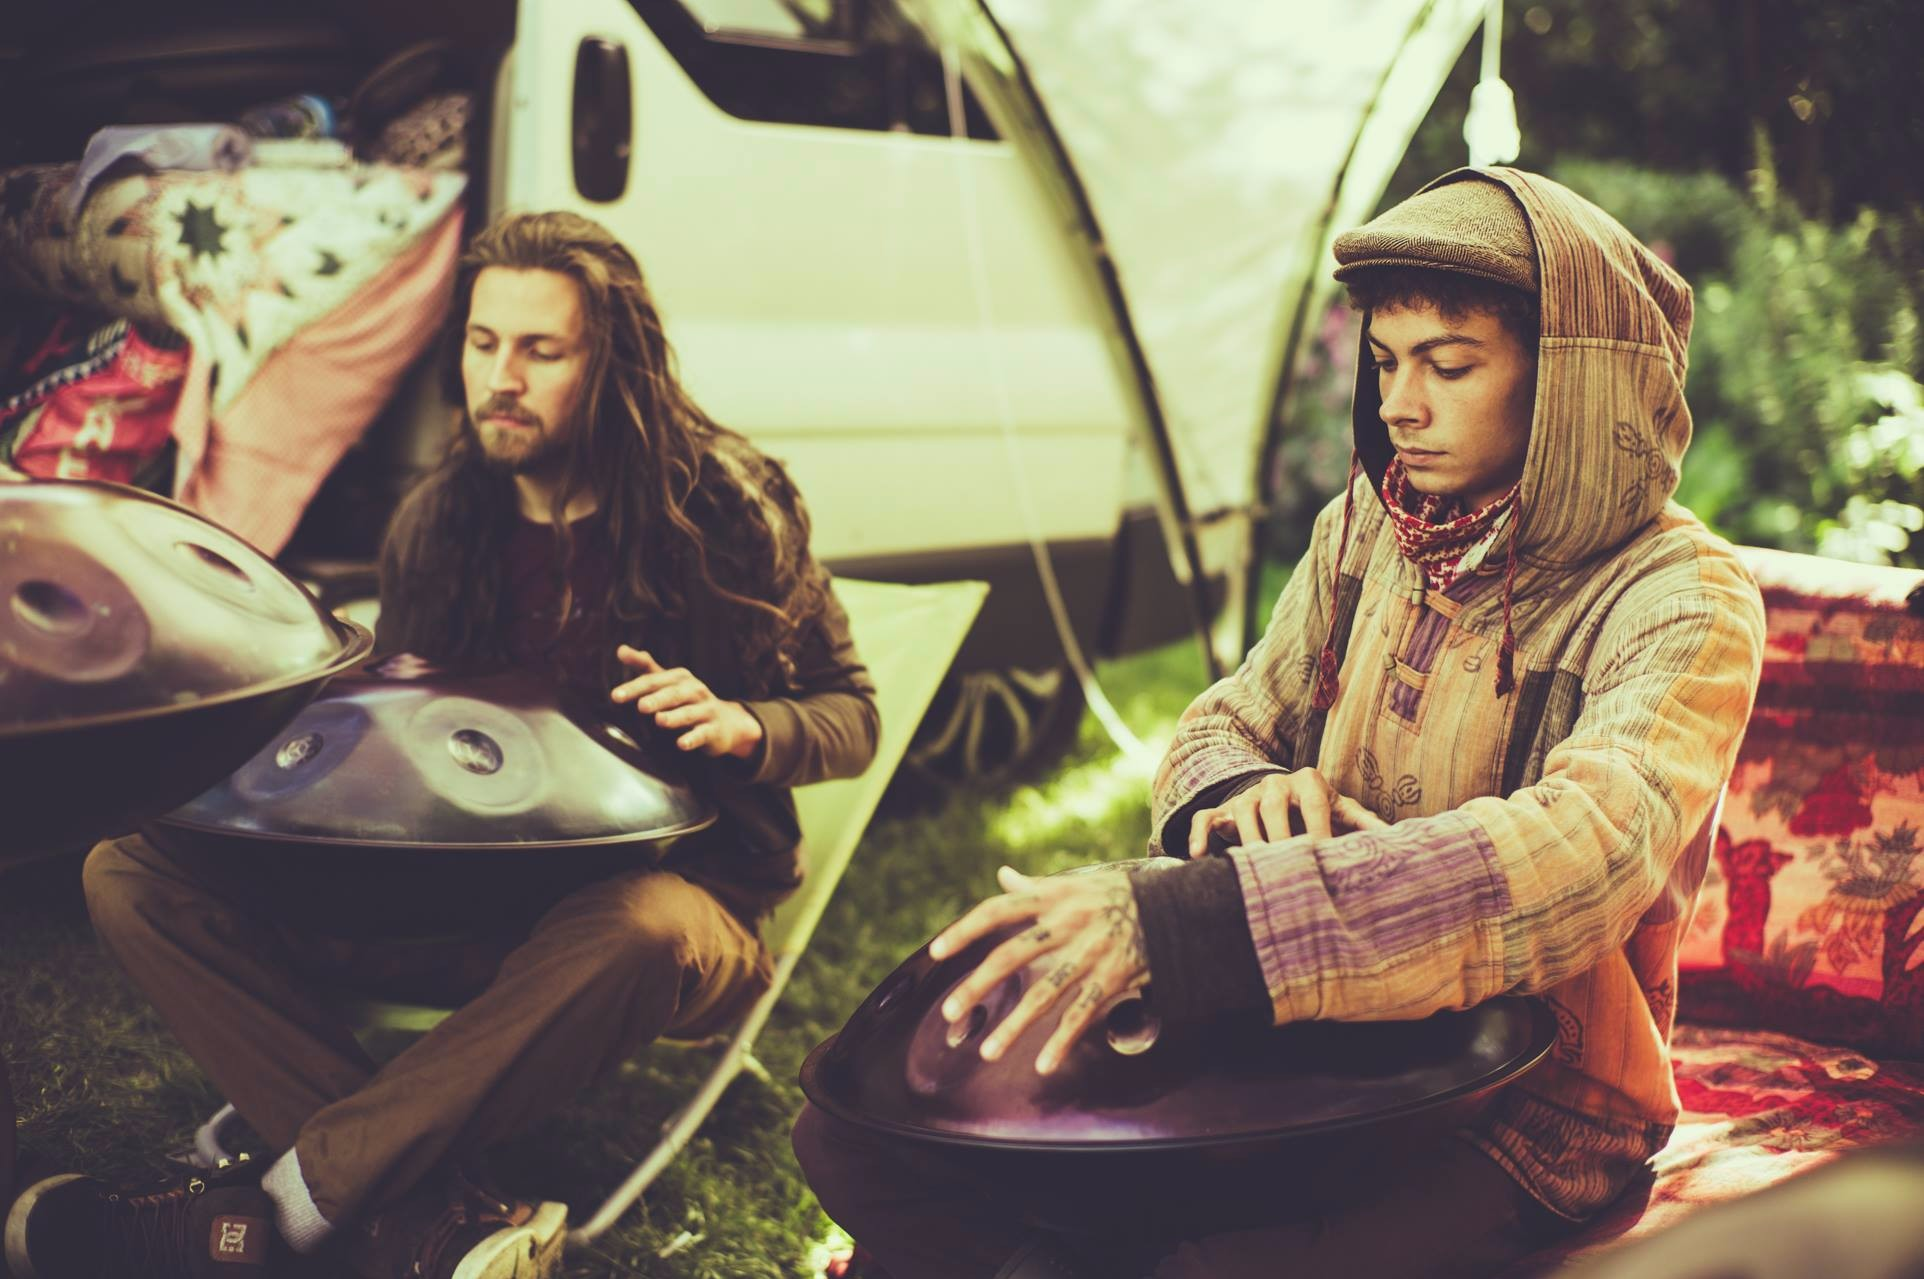 Hangout UK : Interview with one half of the first handpan festival organizers